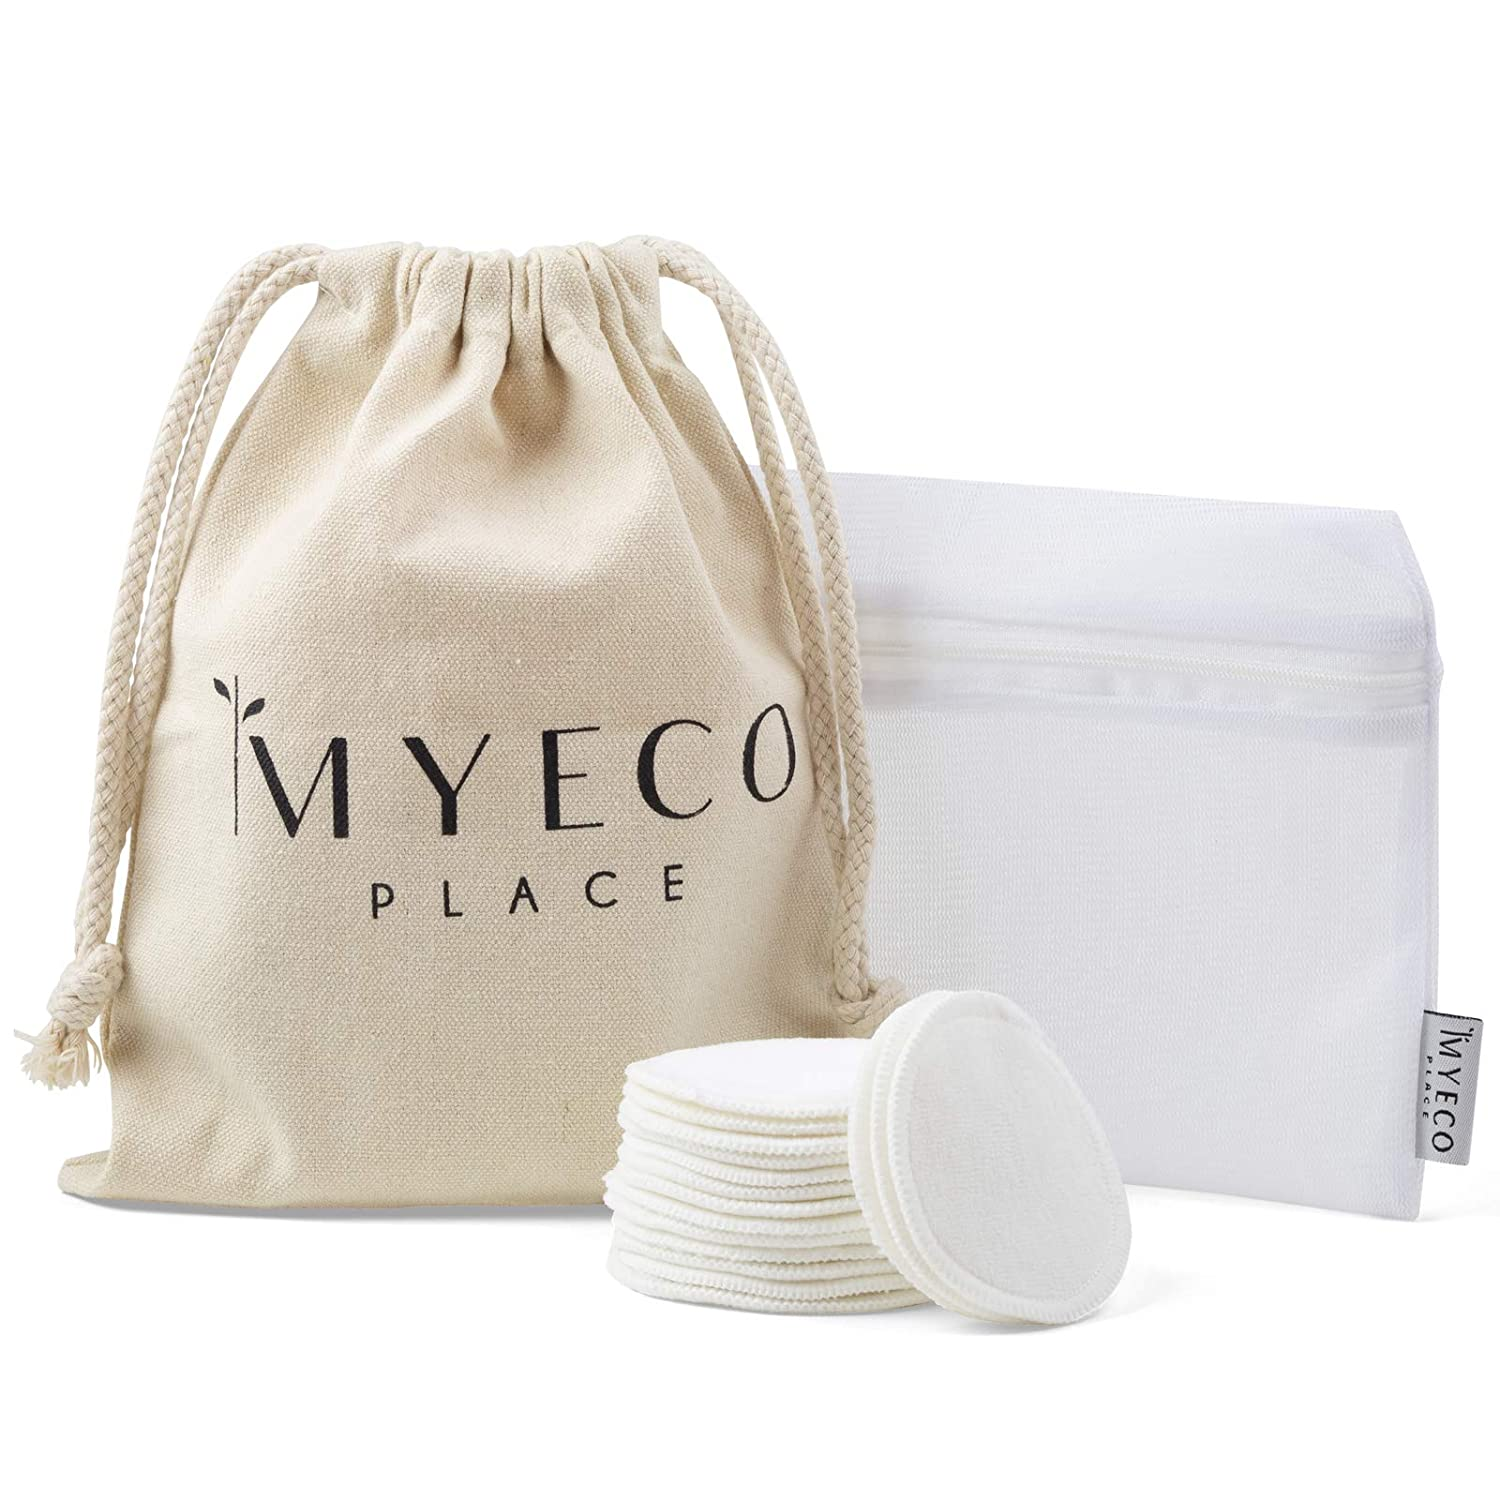 Myeco Place Organic Bamboo Reusable Makeup Remover Pads - 16 Pack with Laundry and Cloth Travel Bag - Chemical Free, Skin and Facial Pads - The Eco Friendly Cotton Round Alternative